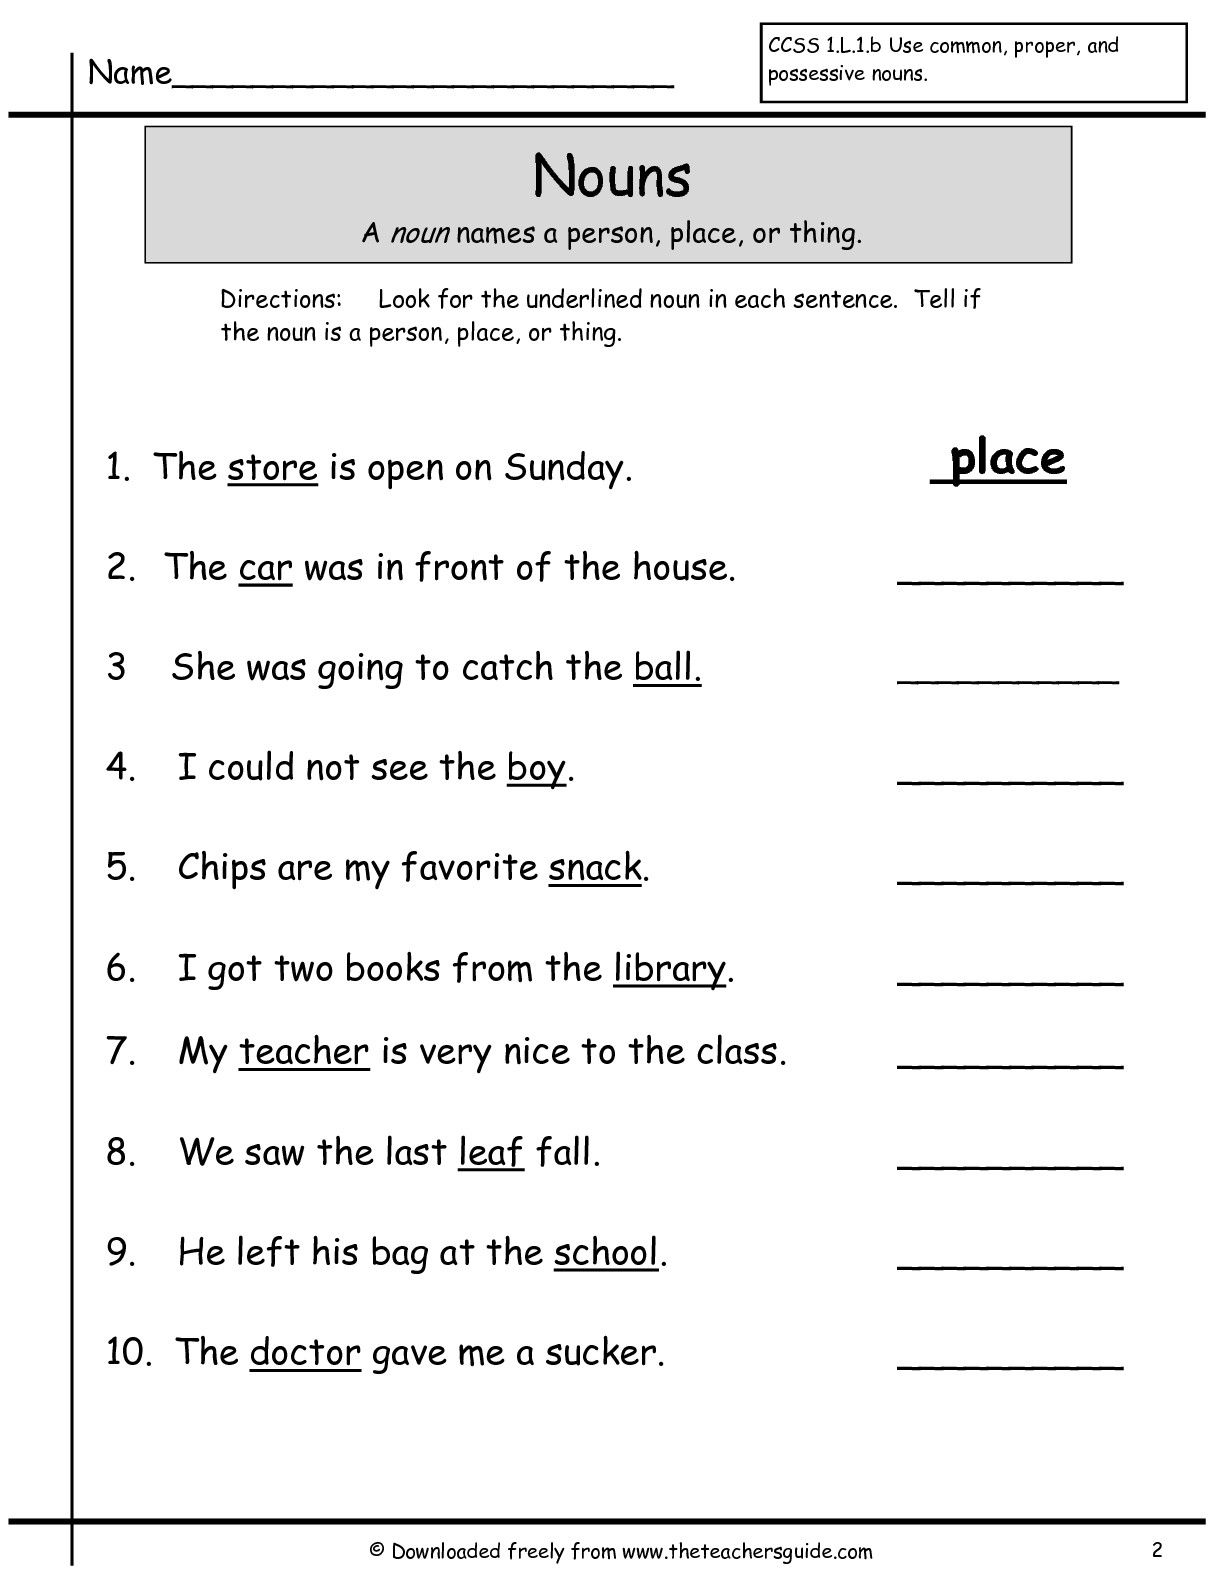 small resolution of nouns grade 1 worksheets - Google Search   Nouns worksheet